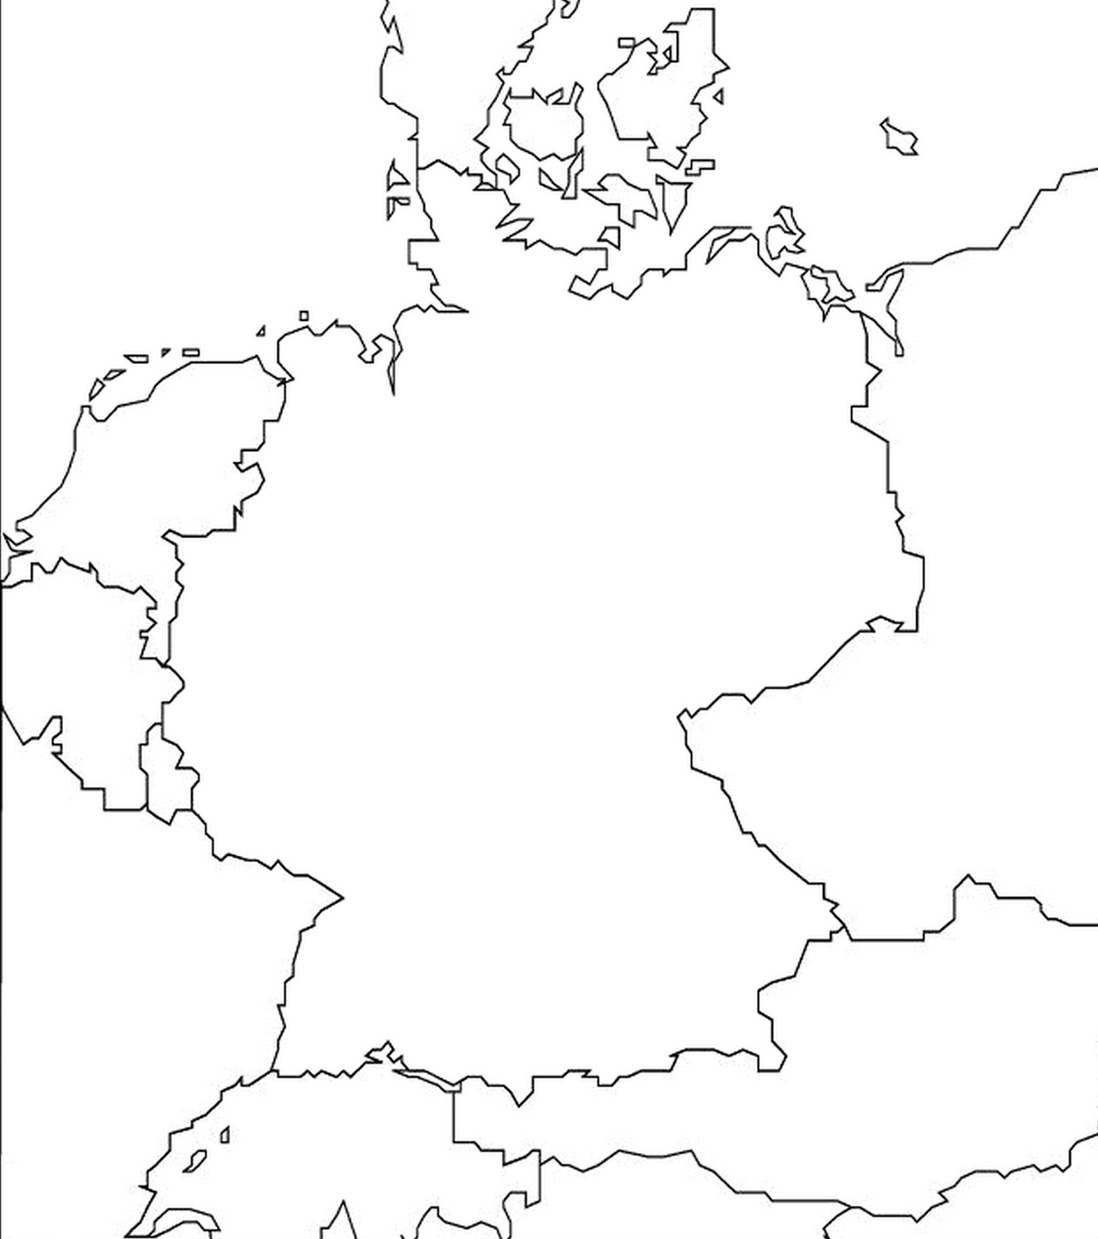 1 outline map of germany and surrounding countries